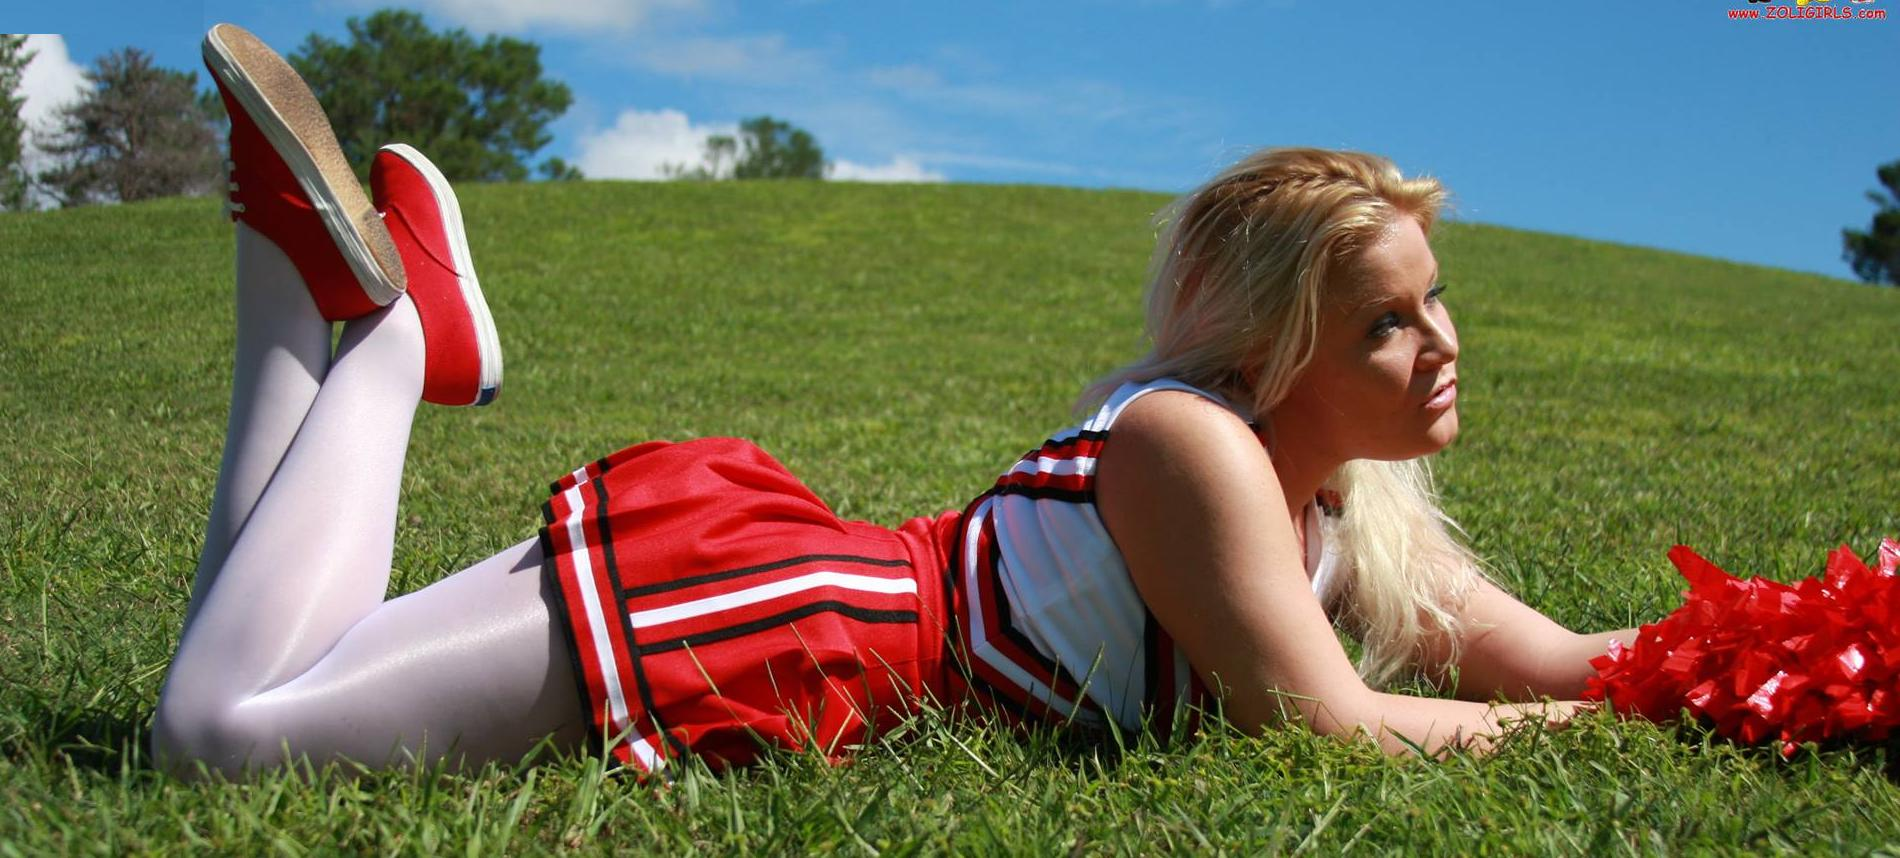 Blonde Cheerleader wearing White Opaque Shiny Pantyhose and Red Sneakers